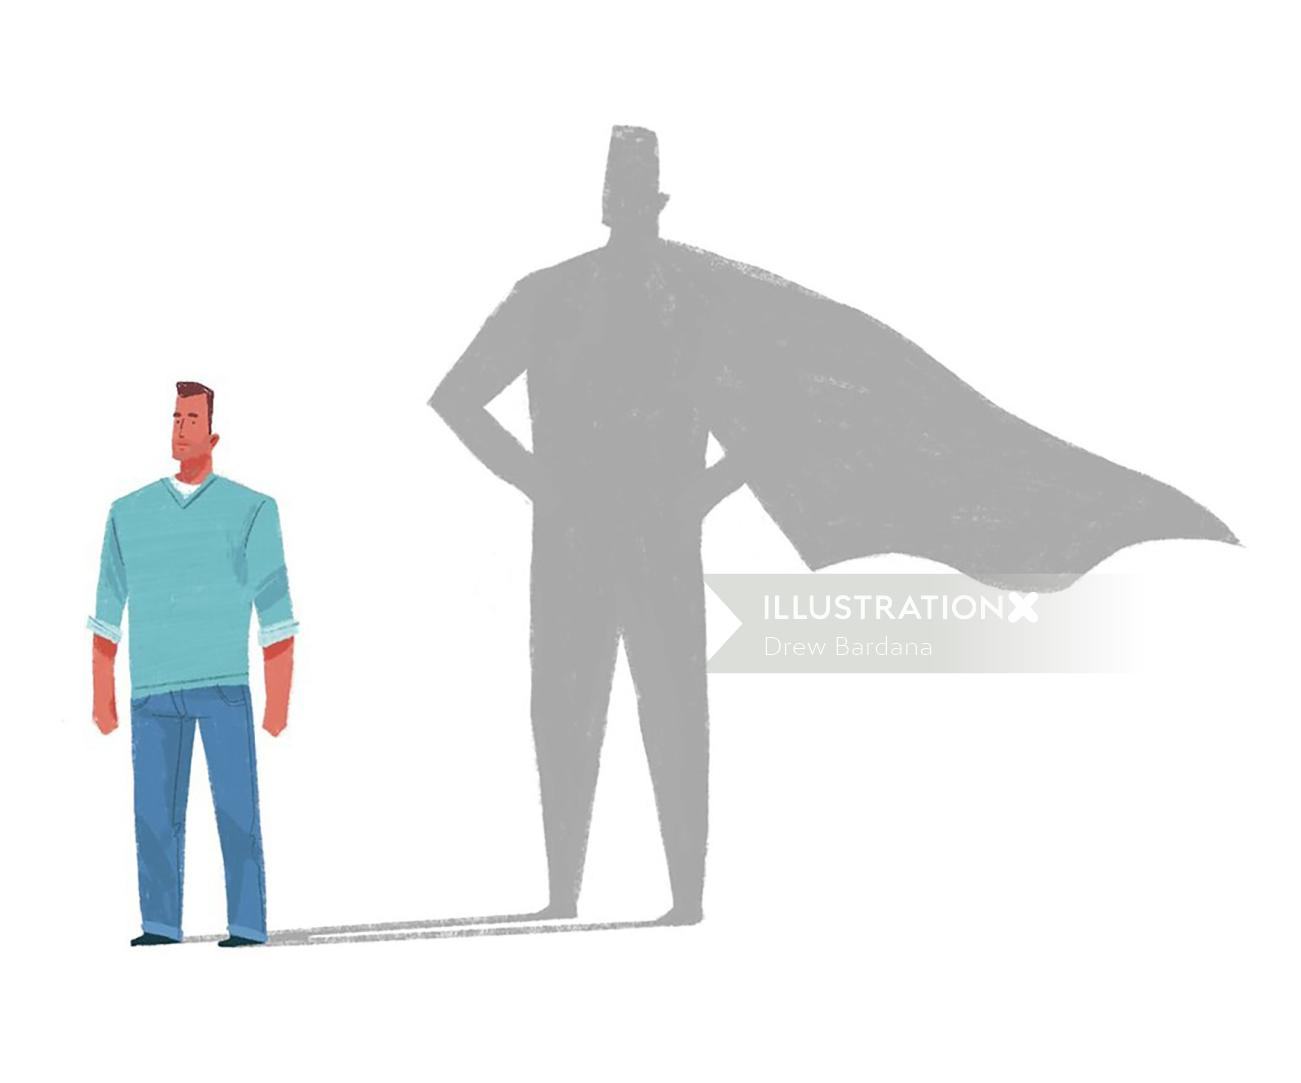 Illustration of a common man with hero inside